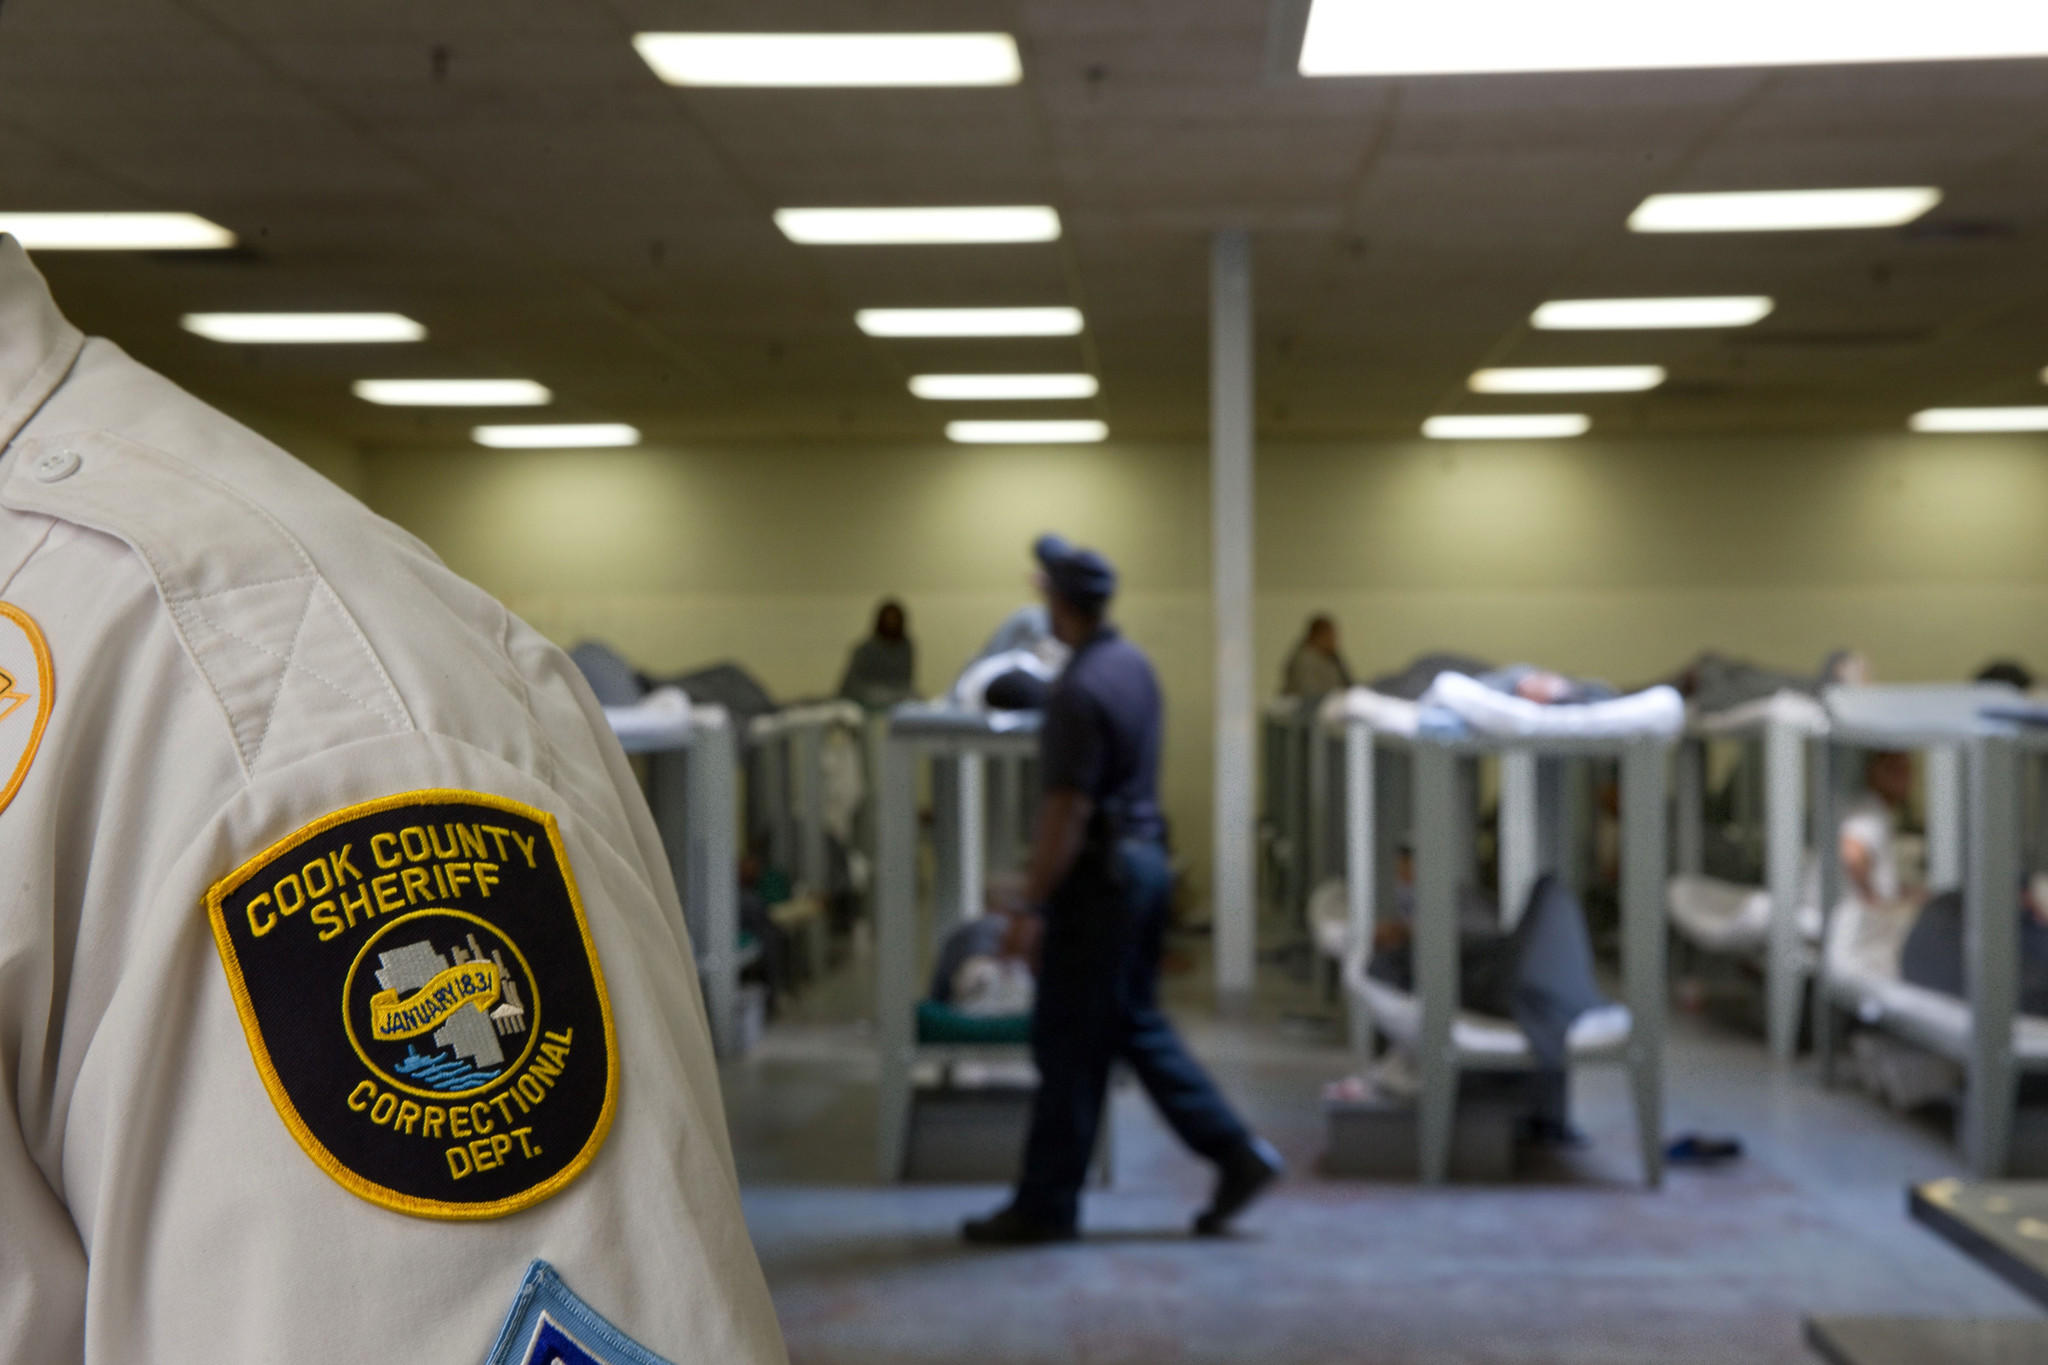 Hundreds of inmates sleep together on bunks in a large room of the Cook County Jail in 2013.